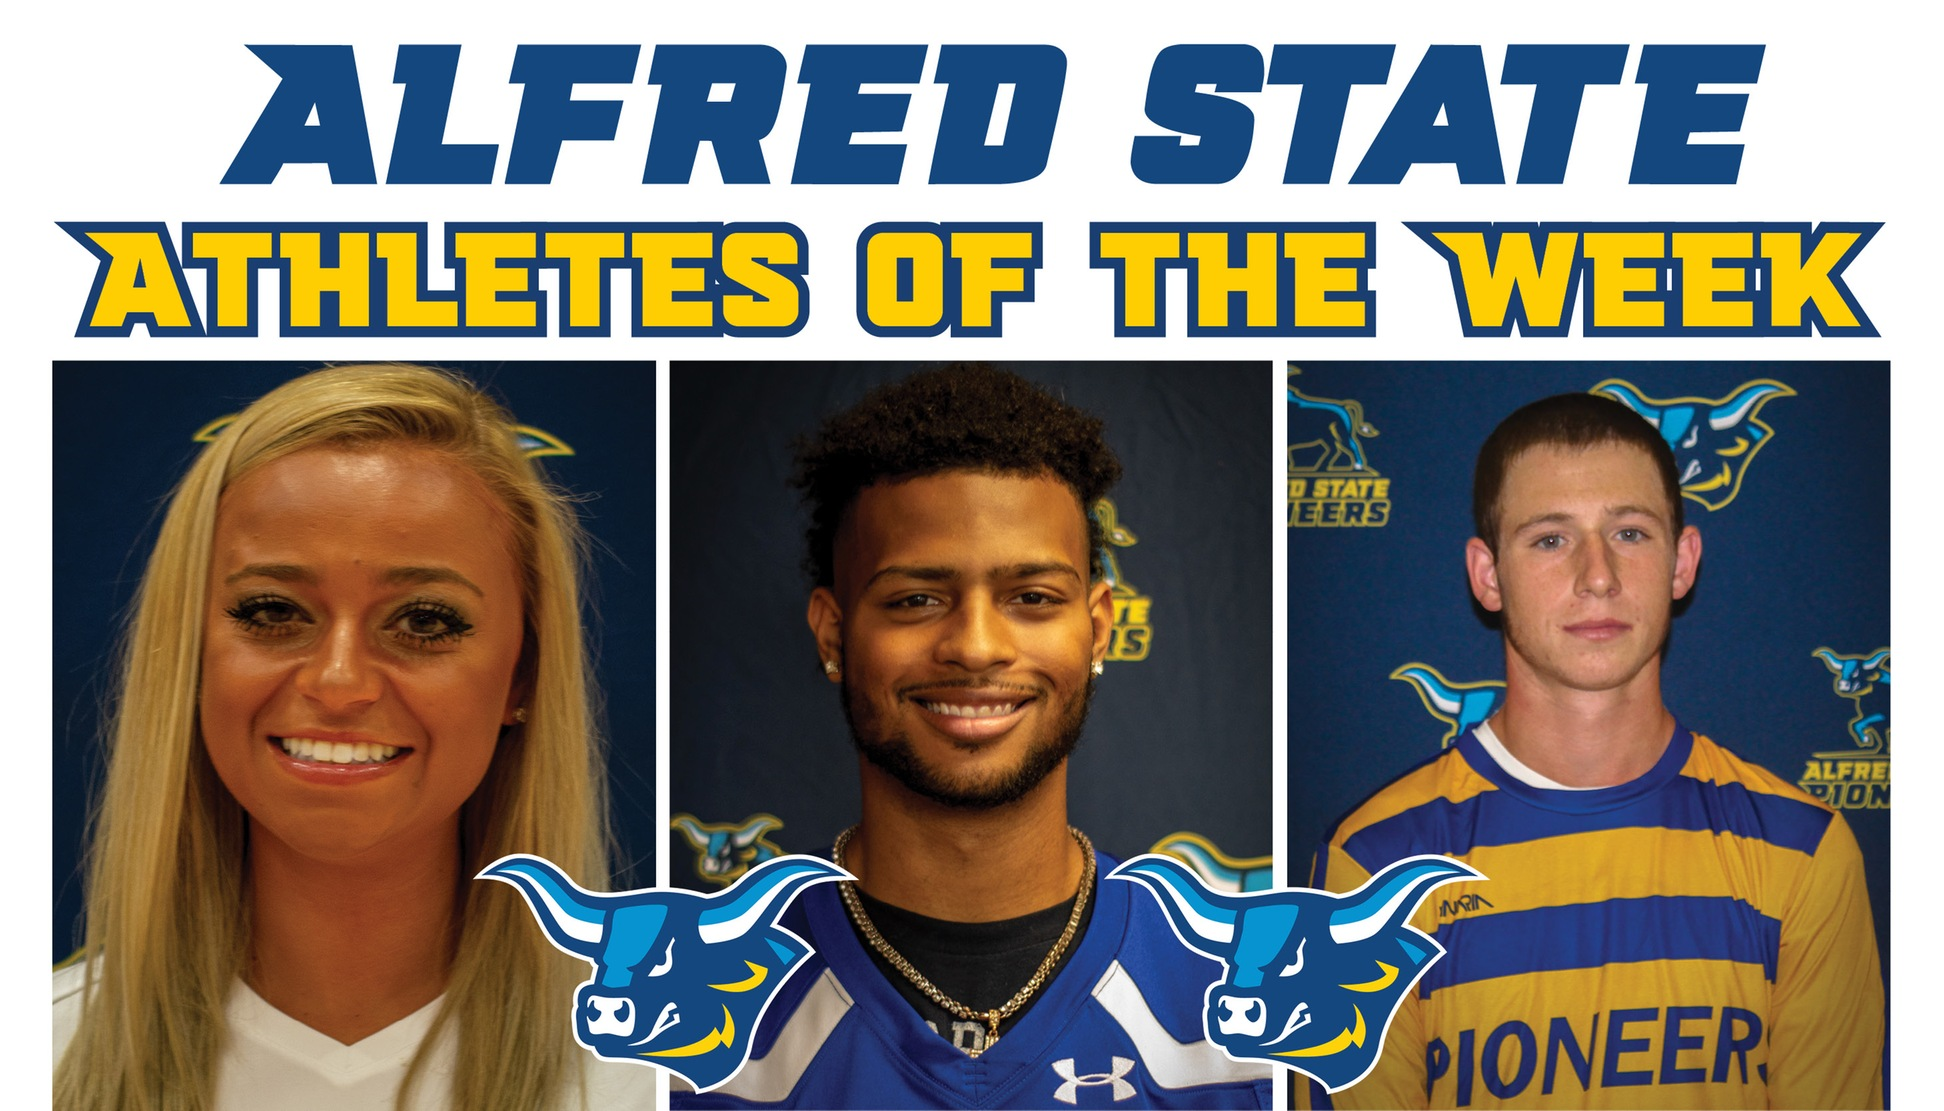 Michayla Salatel, Jalen Long, and Just Hoffmann named Alfred State Athletes of the Week